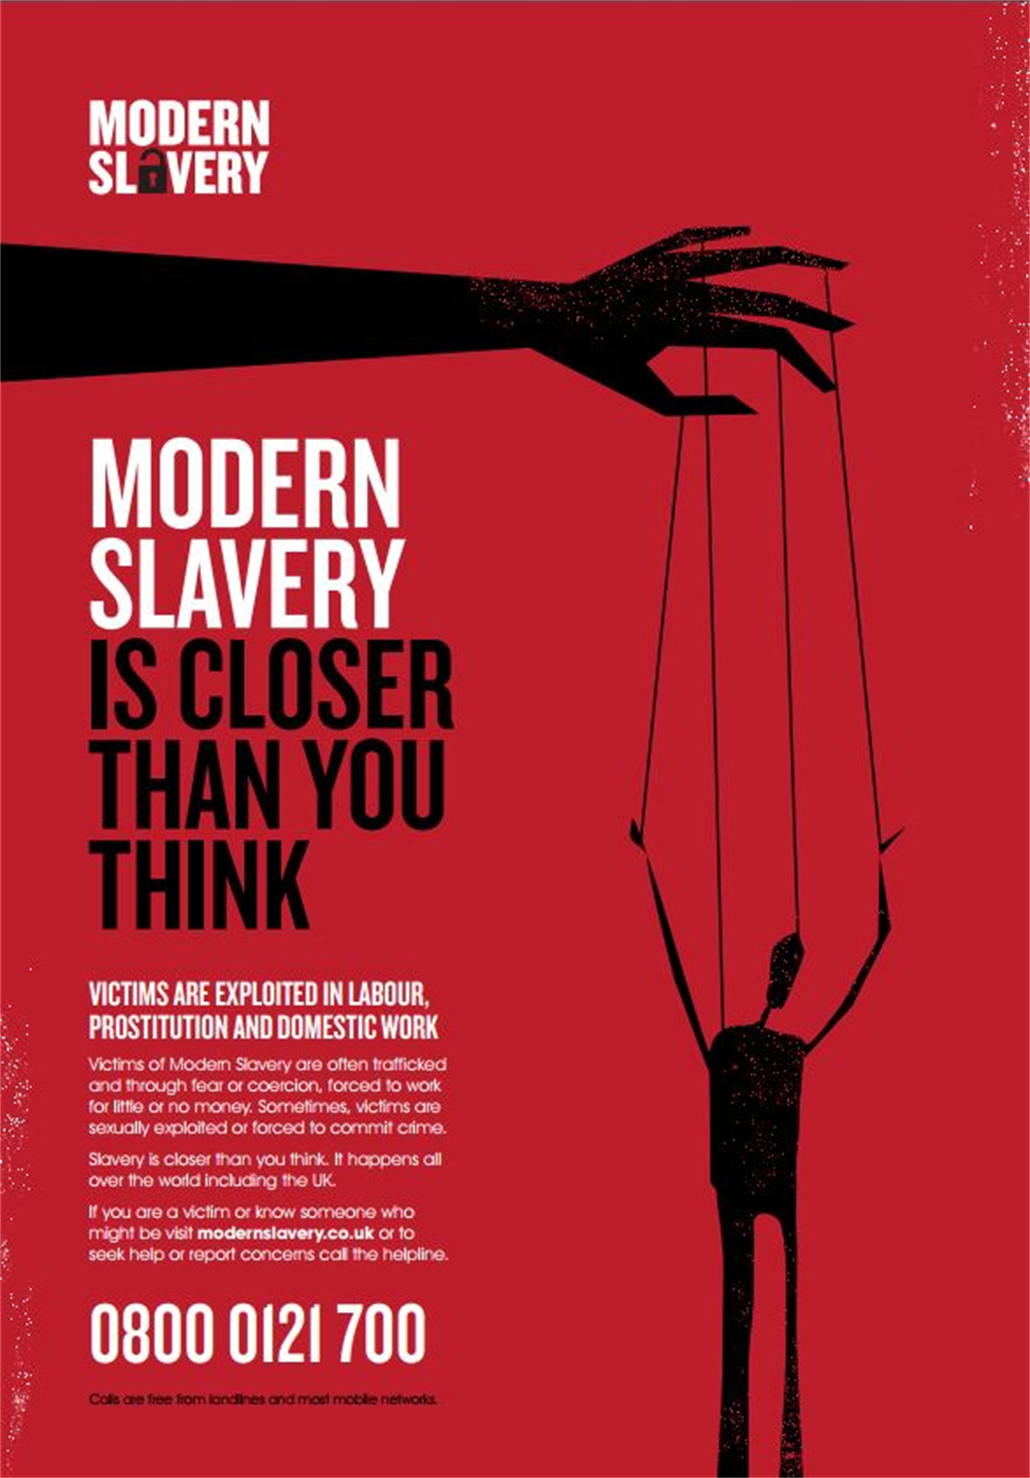 Financial Sector Commission on Modern Slavery and Human Trafficking